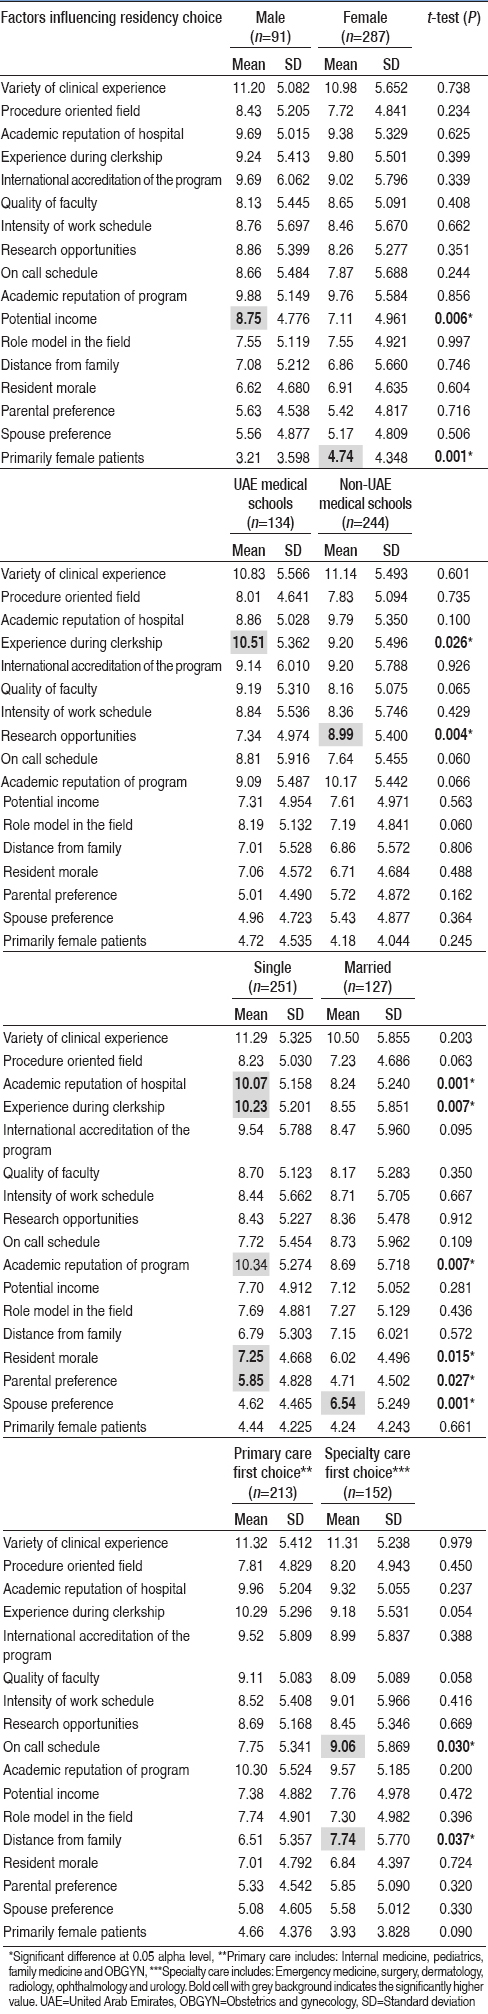 Table 3: Differences in rank order and rank mean of factors influencing residency choice of applicants to residency programs in the United Arab Emirates. Comparison between Gender, United Arab Emirates graduates versus non-United Arab Emirates Graduates, marital status and primary versus specialty care (<i>n</i>=378)